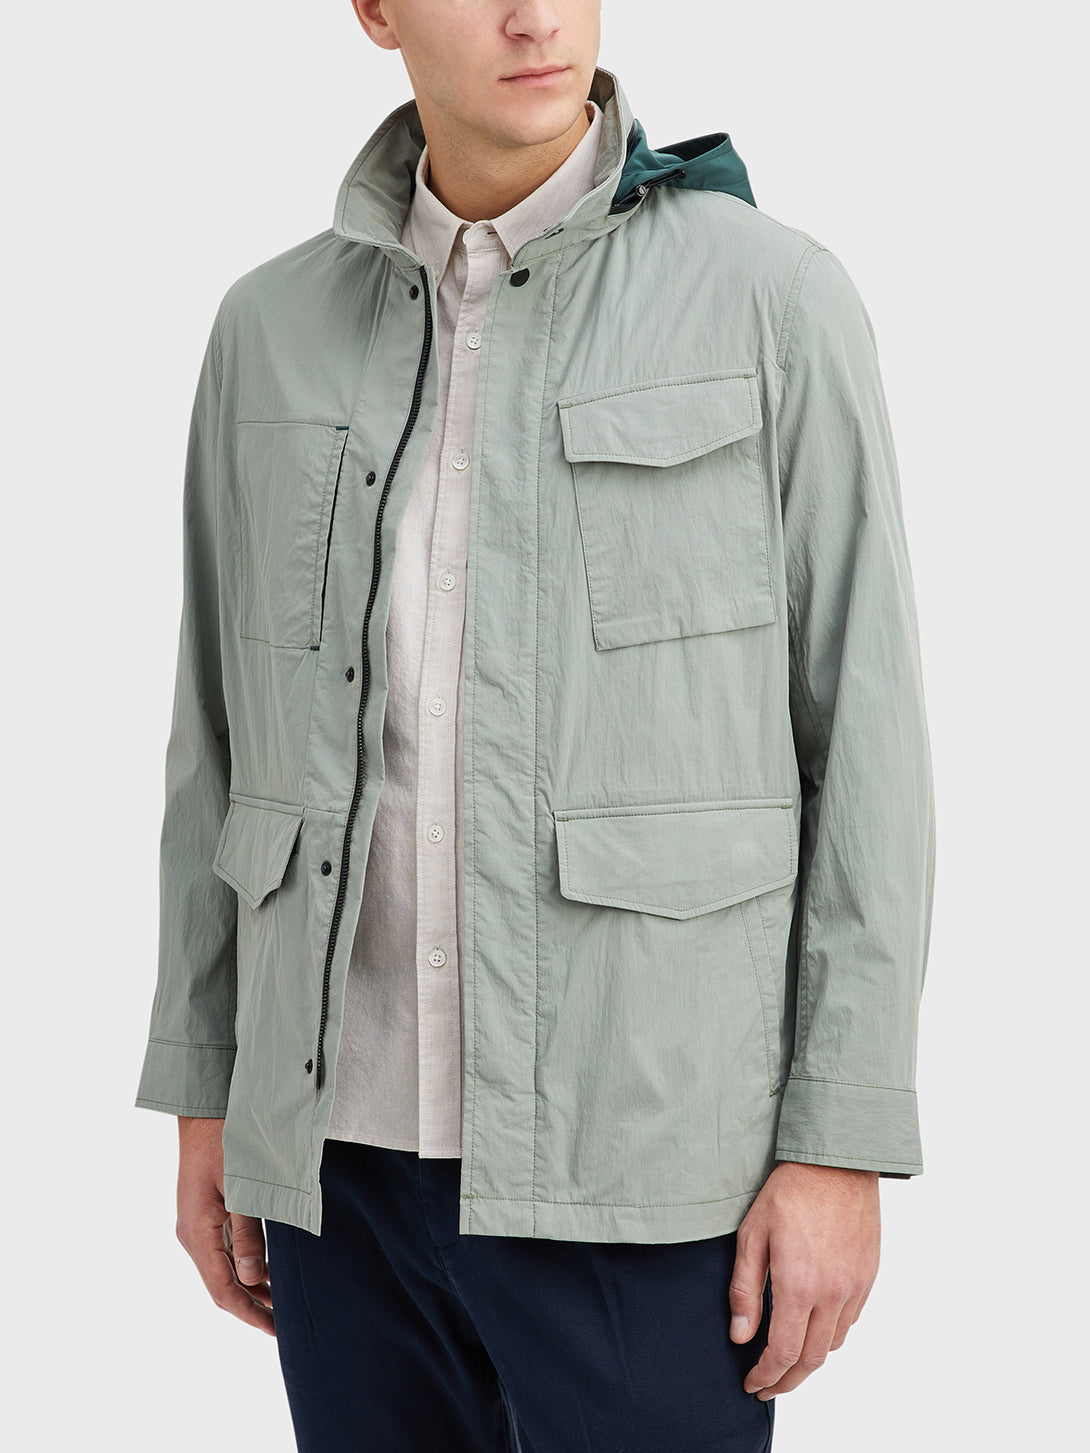 Seagrass Green Julian M65 Jacket Men's cotton jackets ONS Clothing